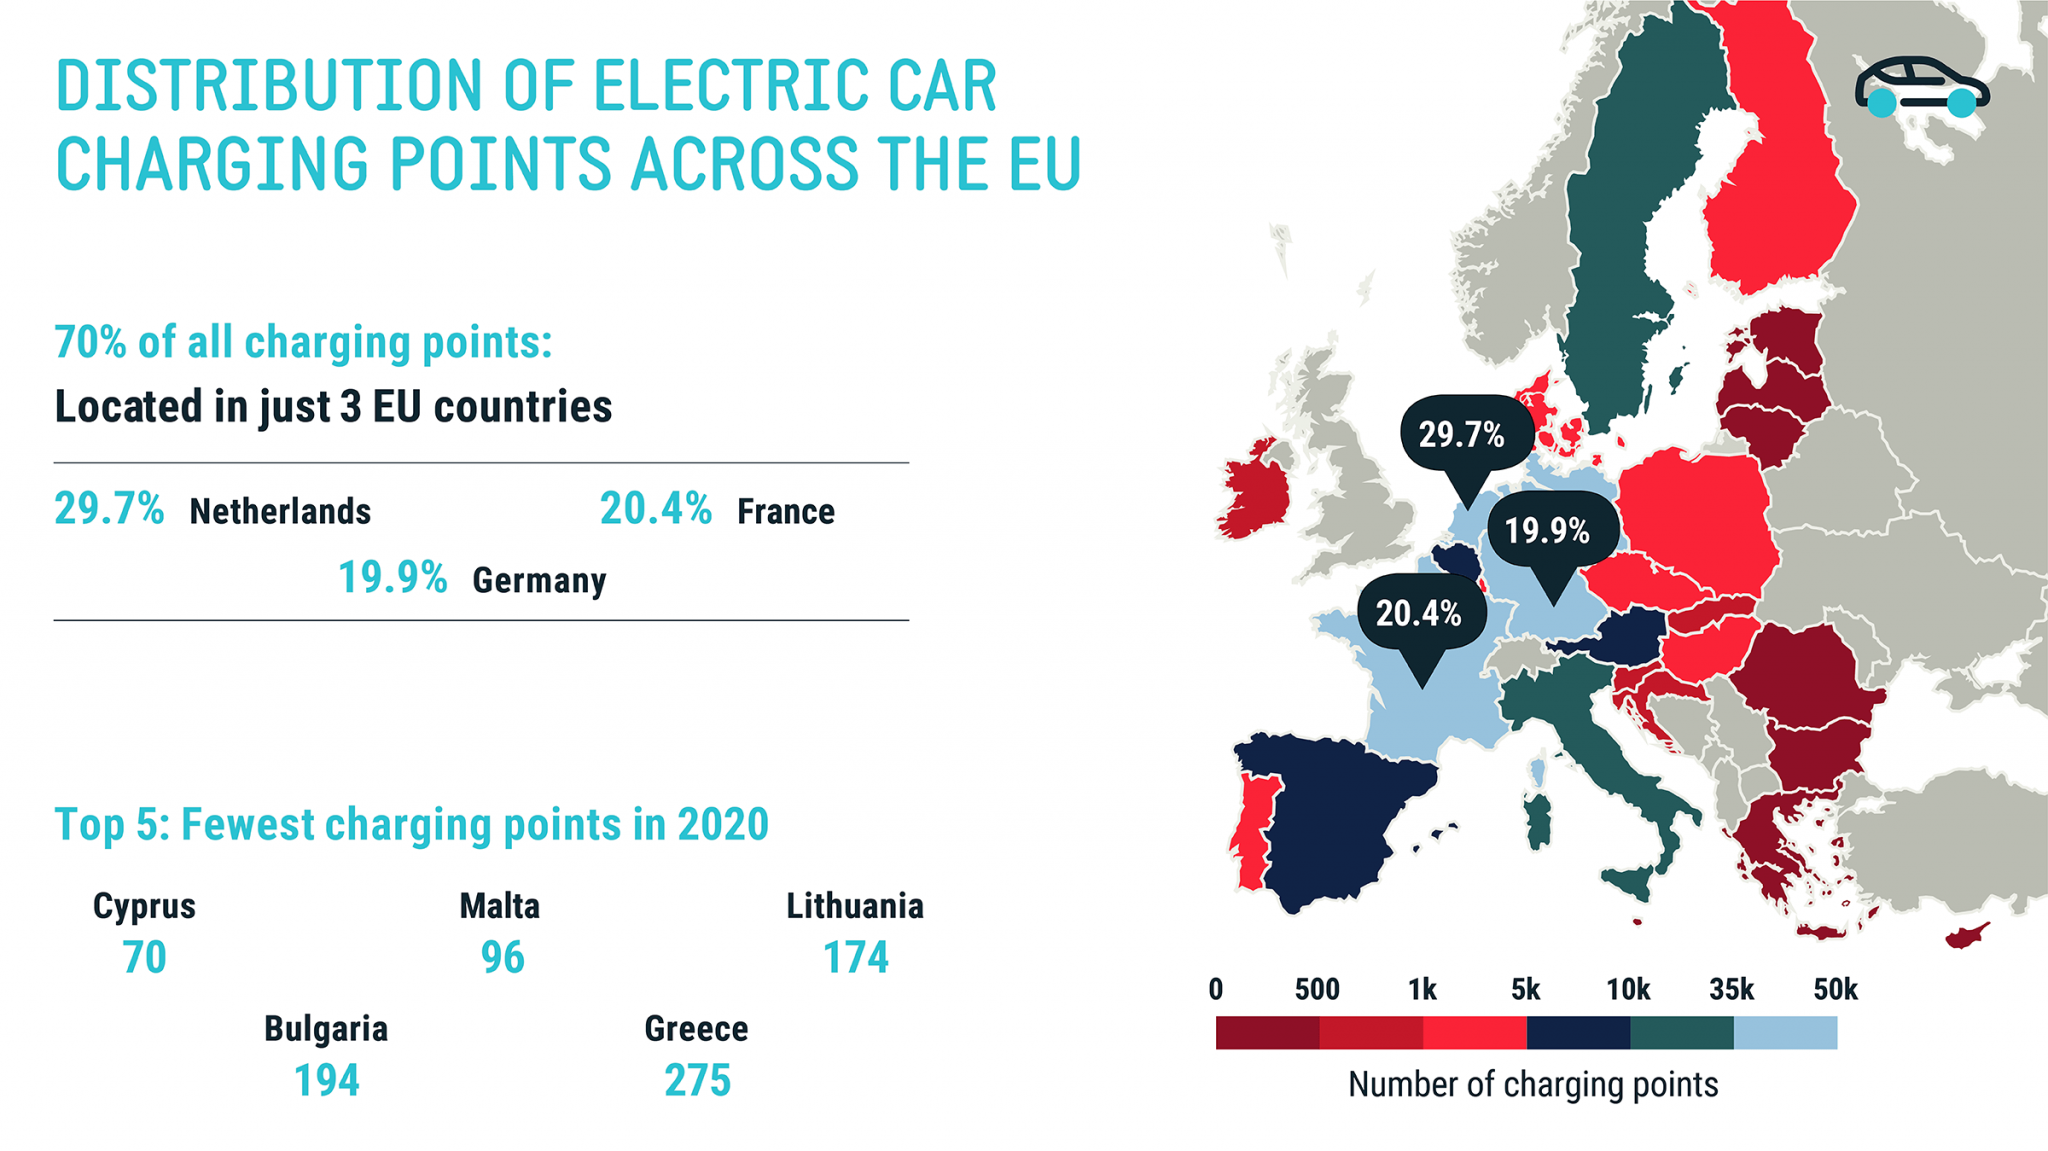 risk-of-two-track-europe-for-e-mobility-with-sharp-divisions-in-roll-out-of-chargers-auto-industry-warns_2400-2048x1151